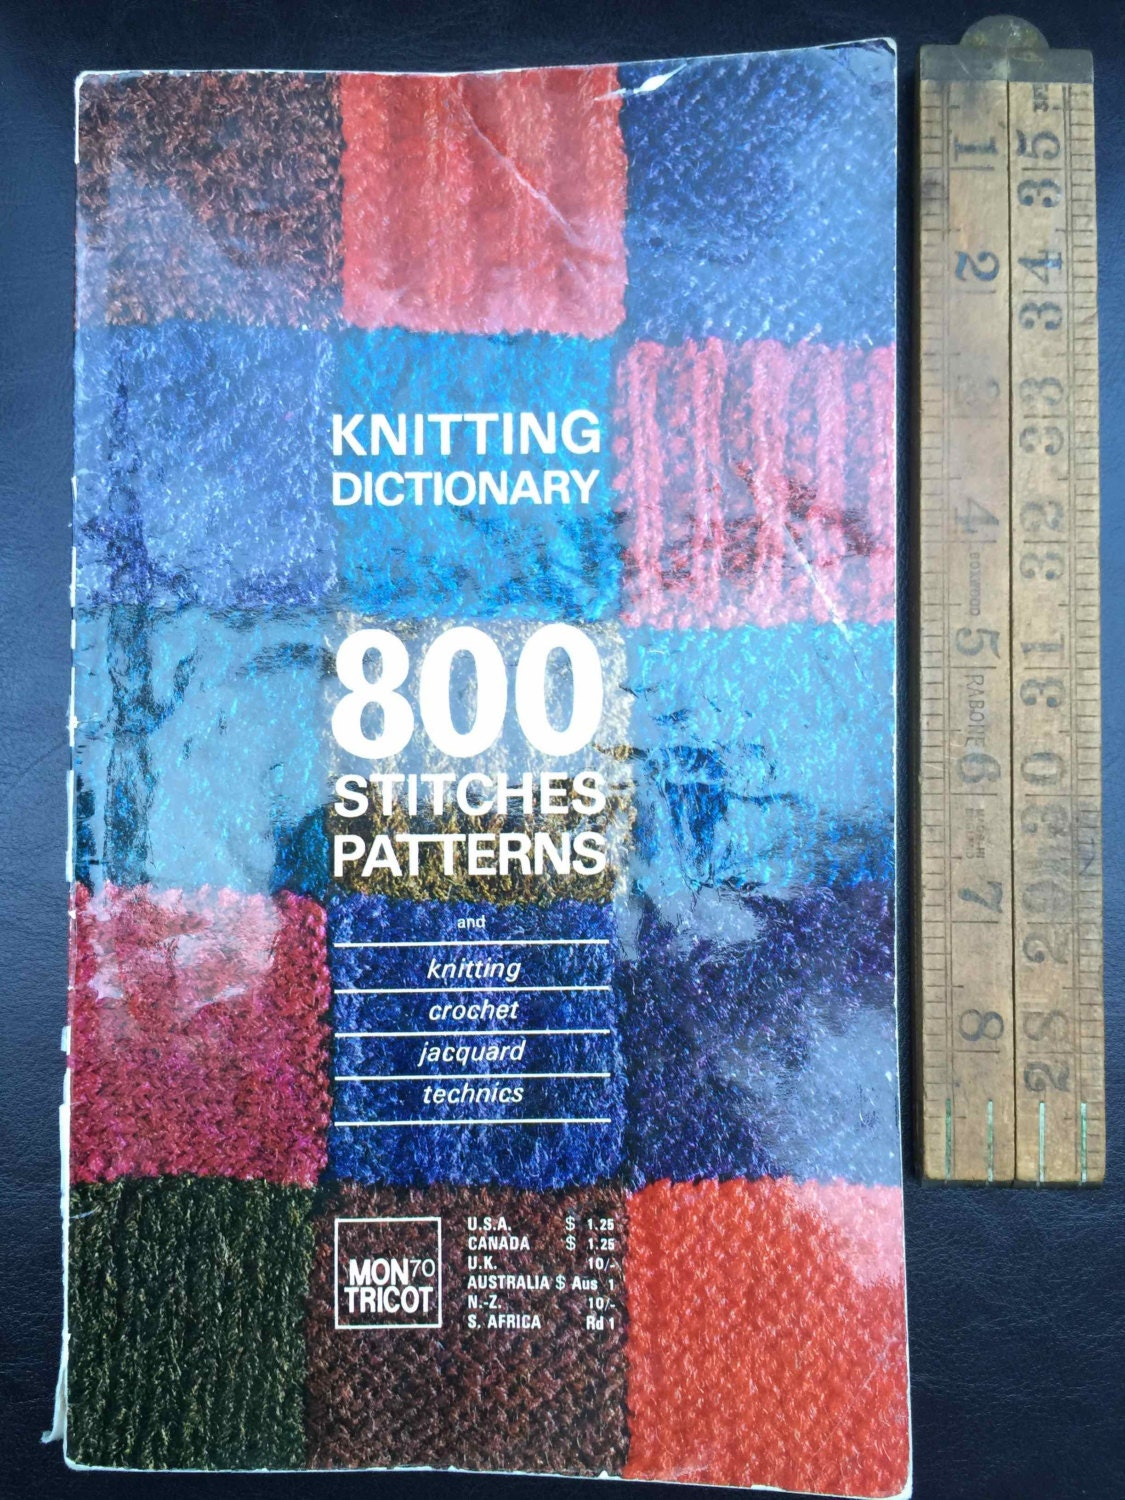 Mon Tricot Knitting Dictionary: 800 Stitches Patterns